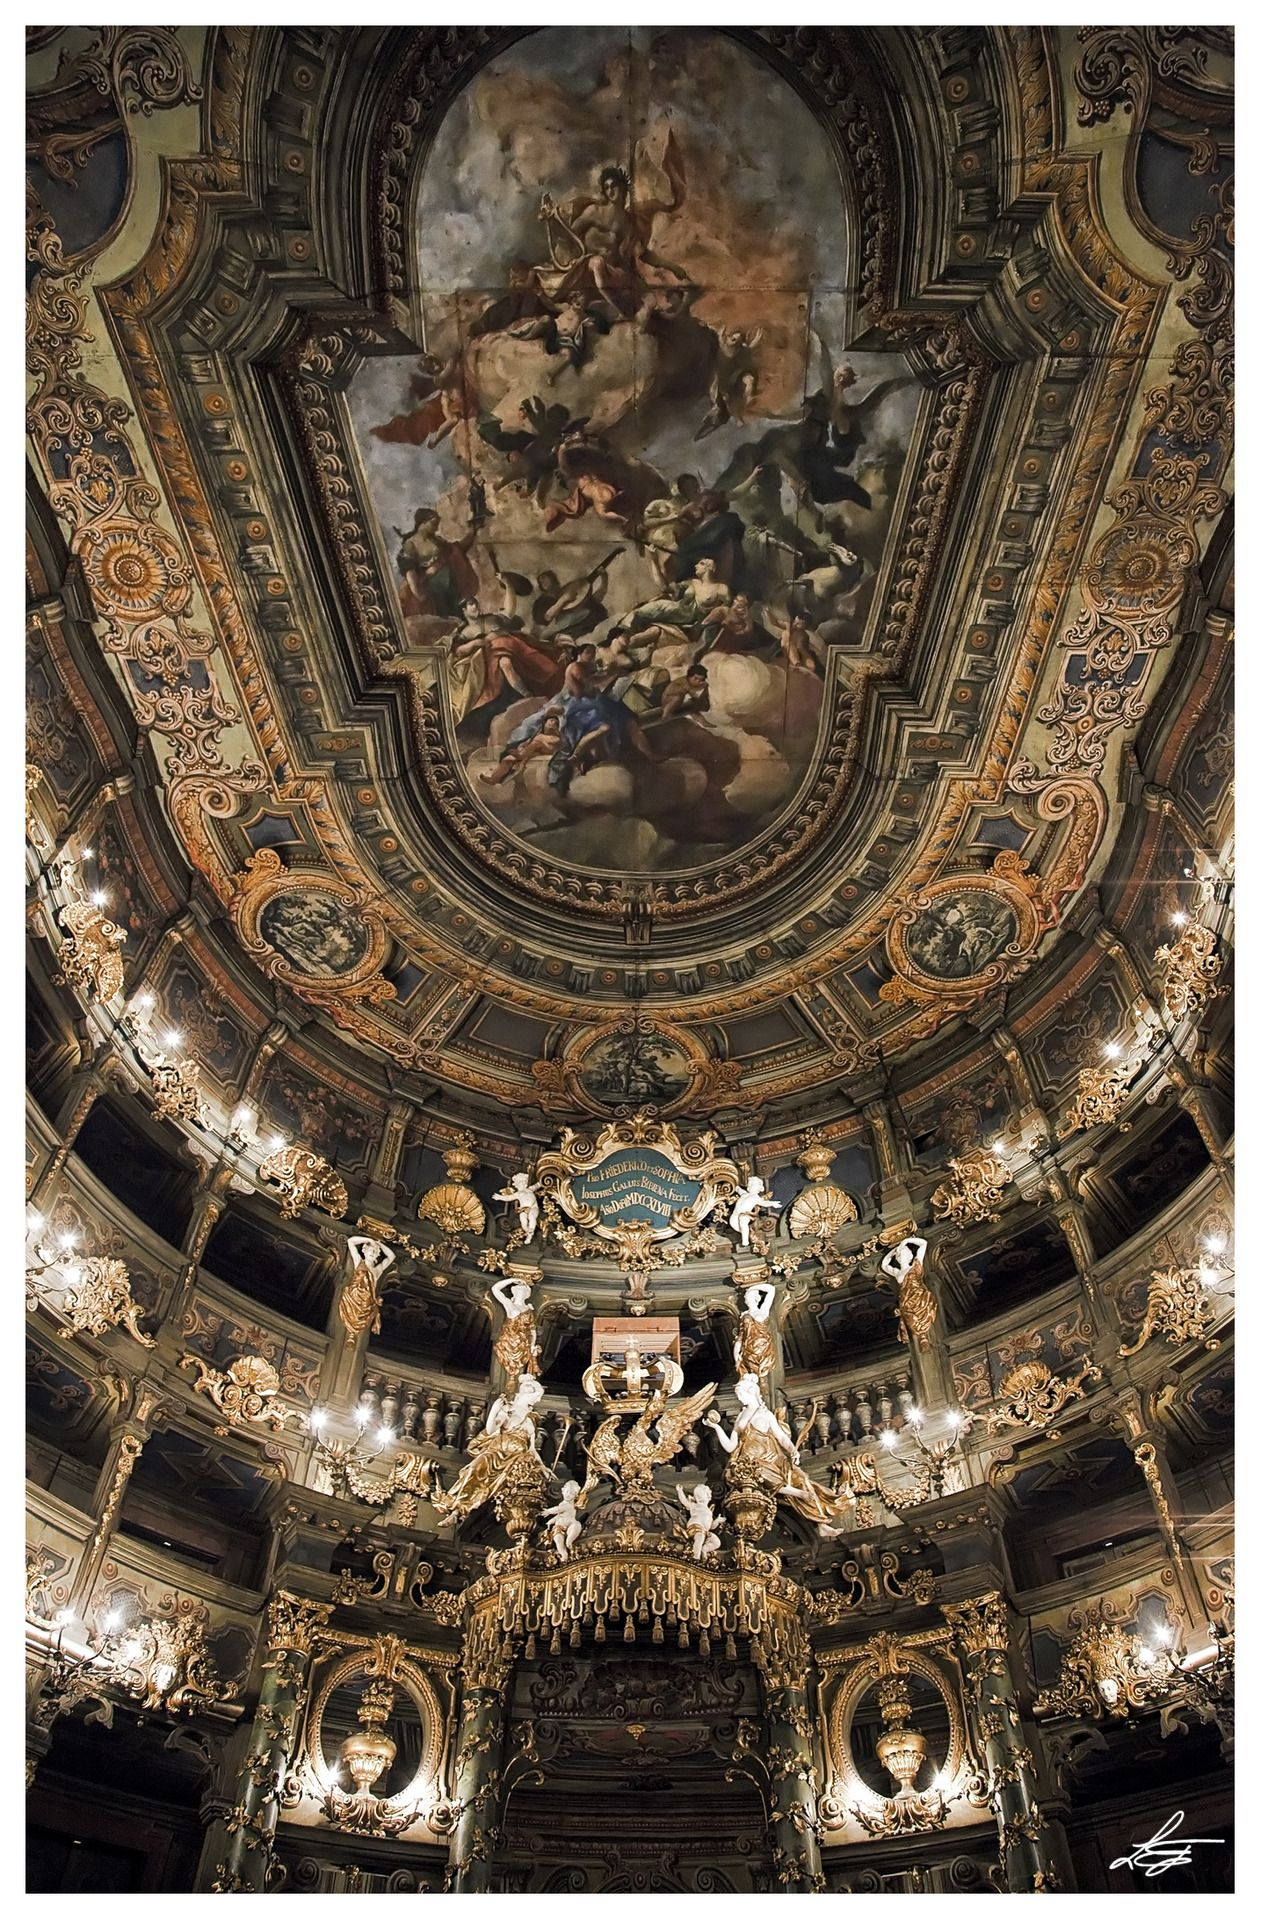 Margravial Opera House Bayreuth Germany Photo By Emanuele Leoni Baroque Architecture Bayreuth Opera House